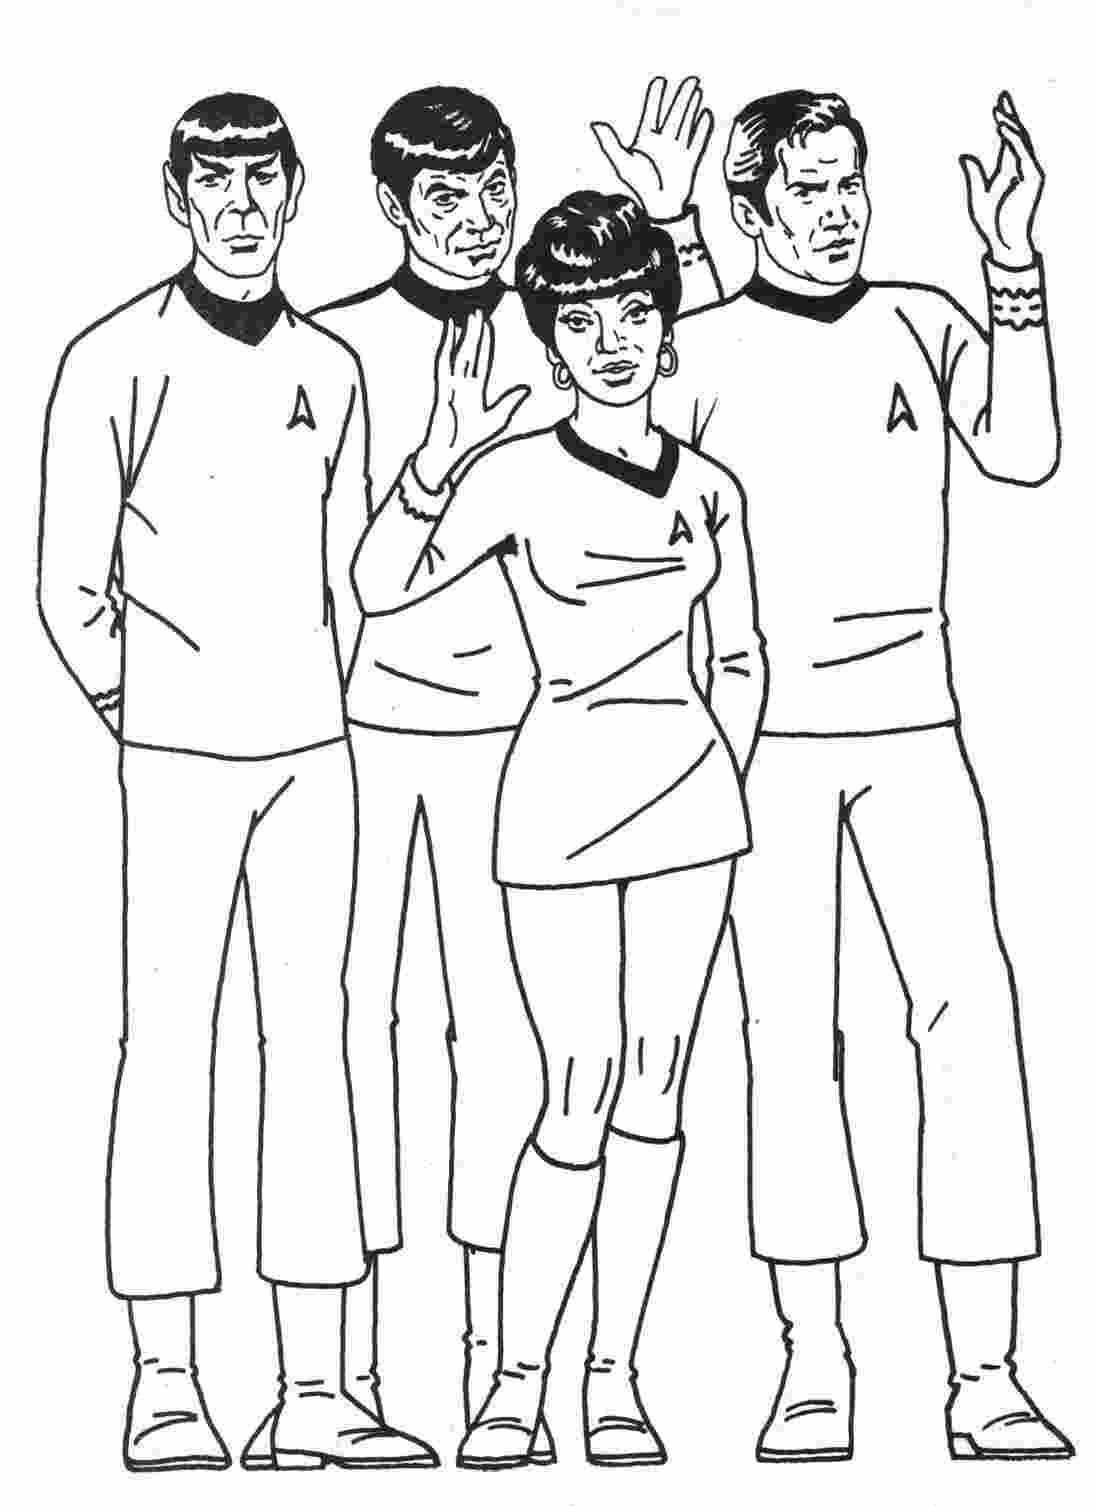 Star Trek Coloring Pages Free Star Trek Is An American Media Franchise Based On The Science In 2020 Star Trek Printables Coloring Books Star Trek Quilt